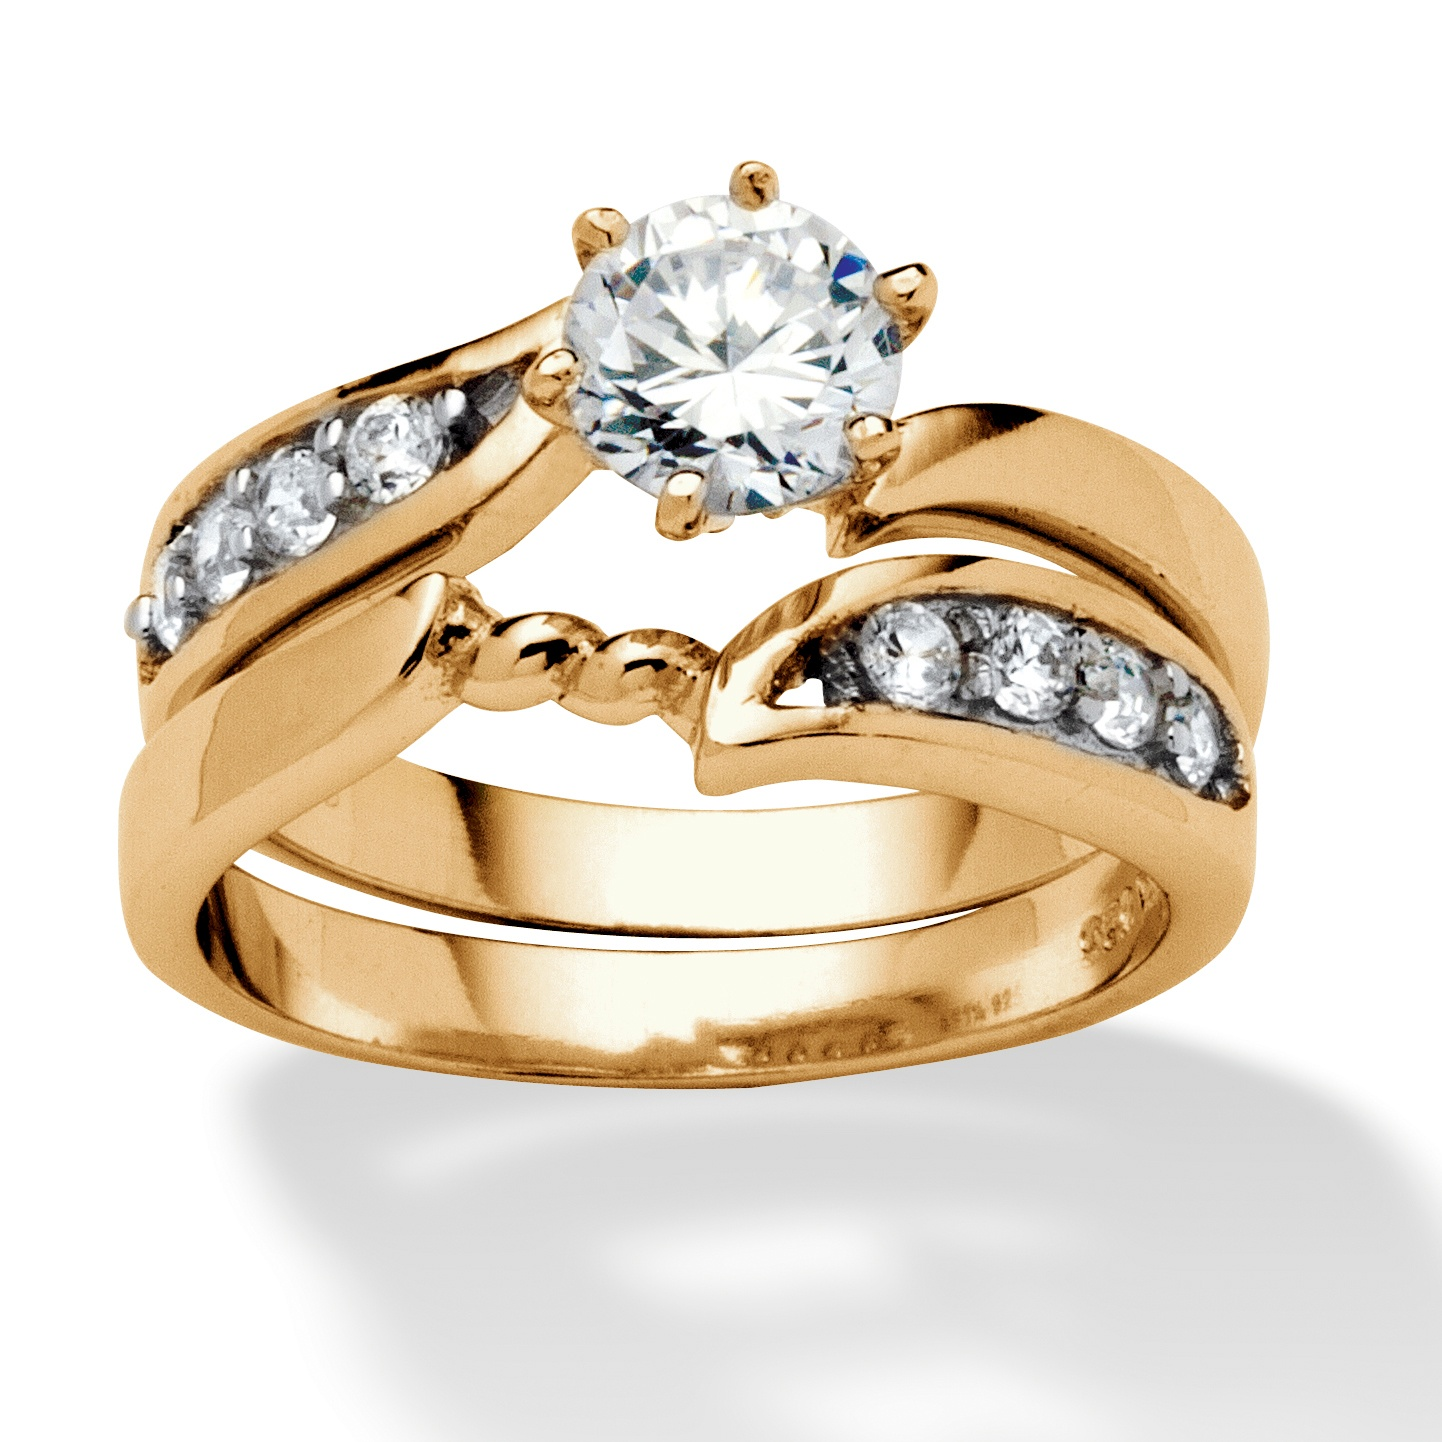 PalmBeach Jewelry 2 Piece .86 TCW Round Cubic Zirconia Twist Bridal Ring Set in 18k Gold over Sterling Silver at Sears.com